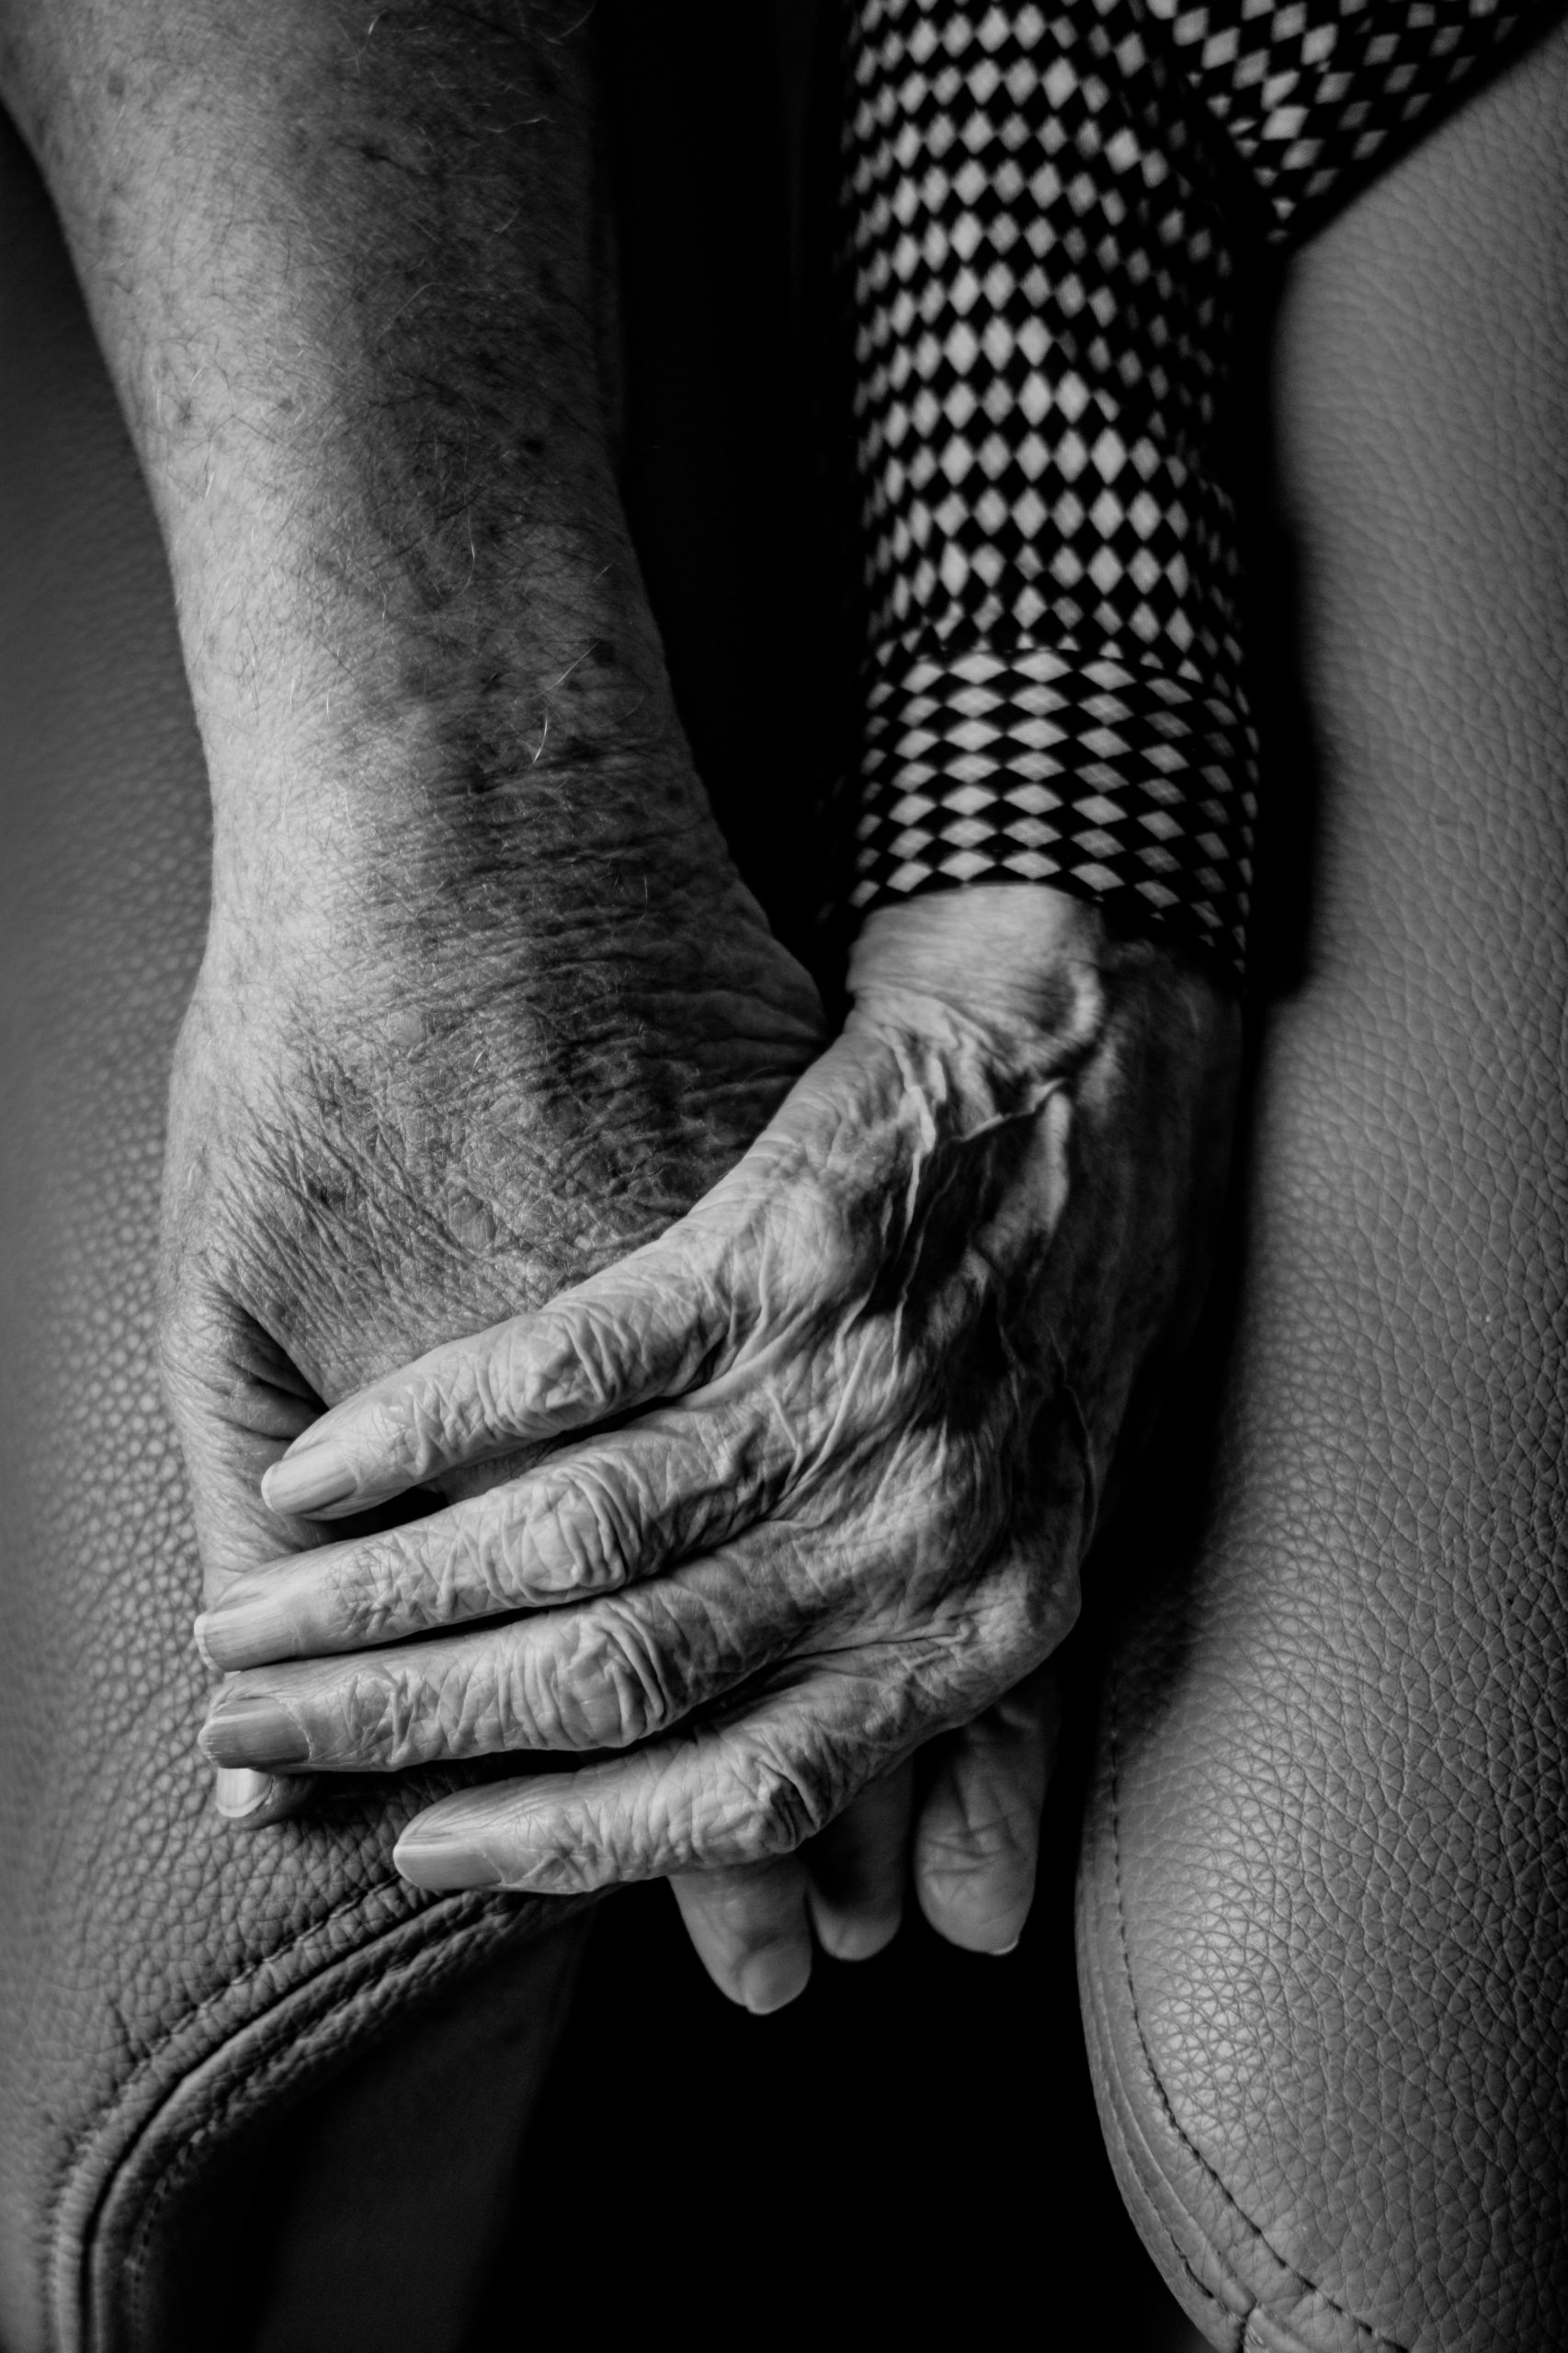 A black and white photo of older people holding hands.